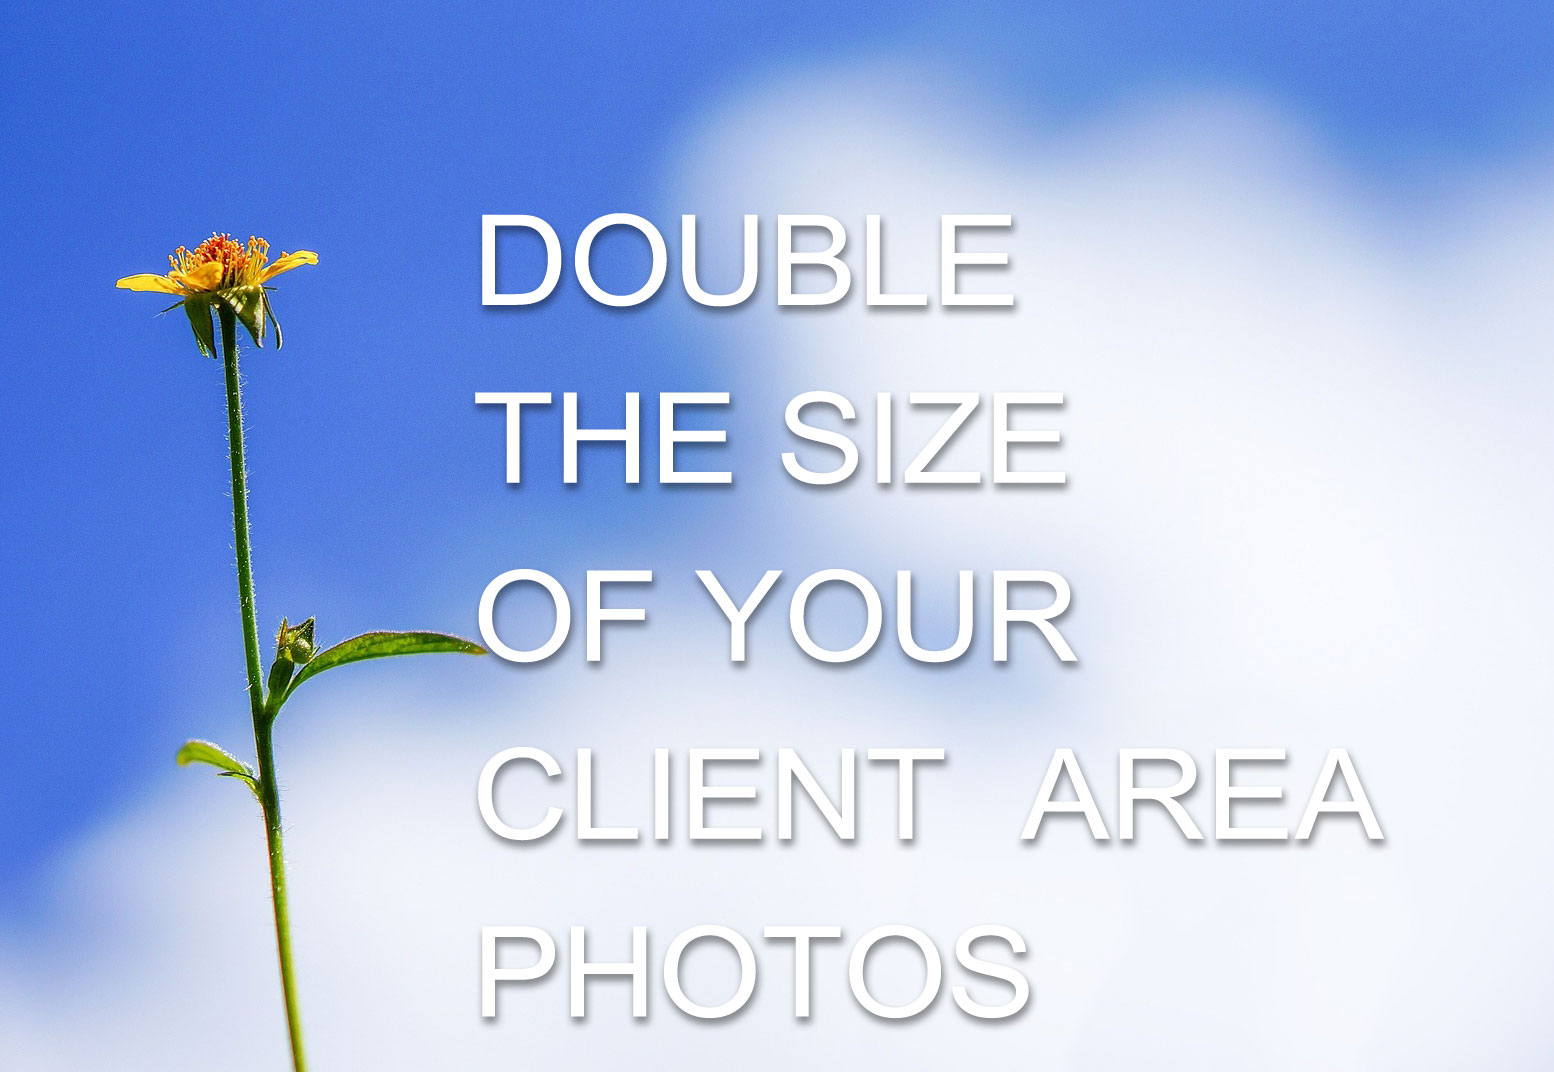 Double the size of your client area photos